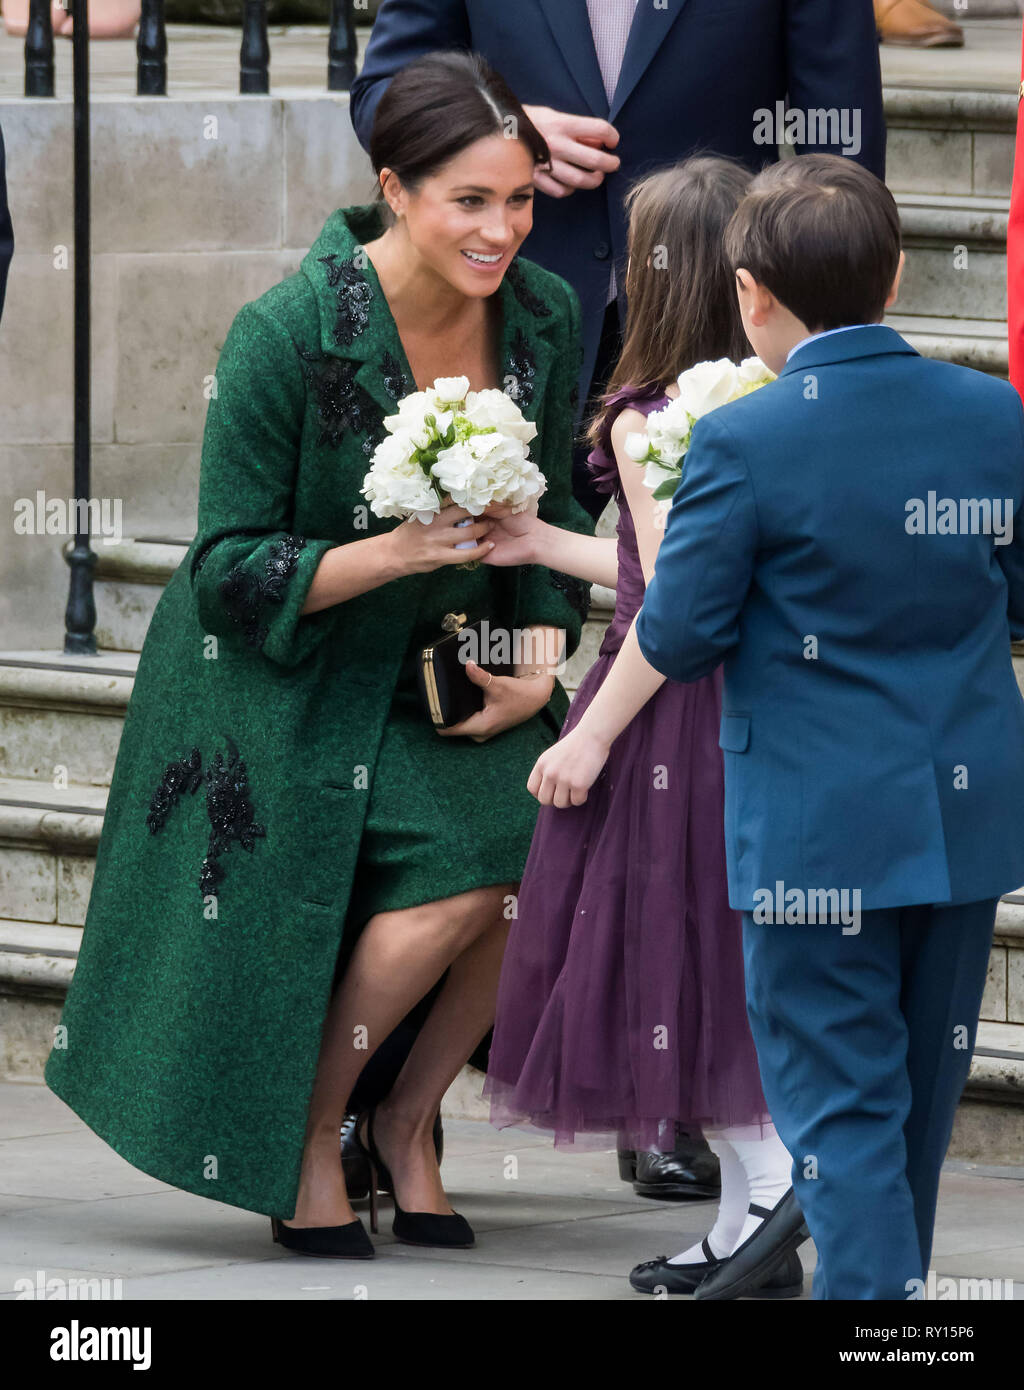 London, UK. 11th Mar 2019. Prince Harry and Meghan Duchess of Sussex co-host event as part of Commonwealth day, celebrating the diverse community of young Canadians living in London and around the UK, at Canada House Credit: Nils Jorgensen/Alamy Live News - Stock Image